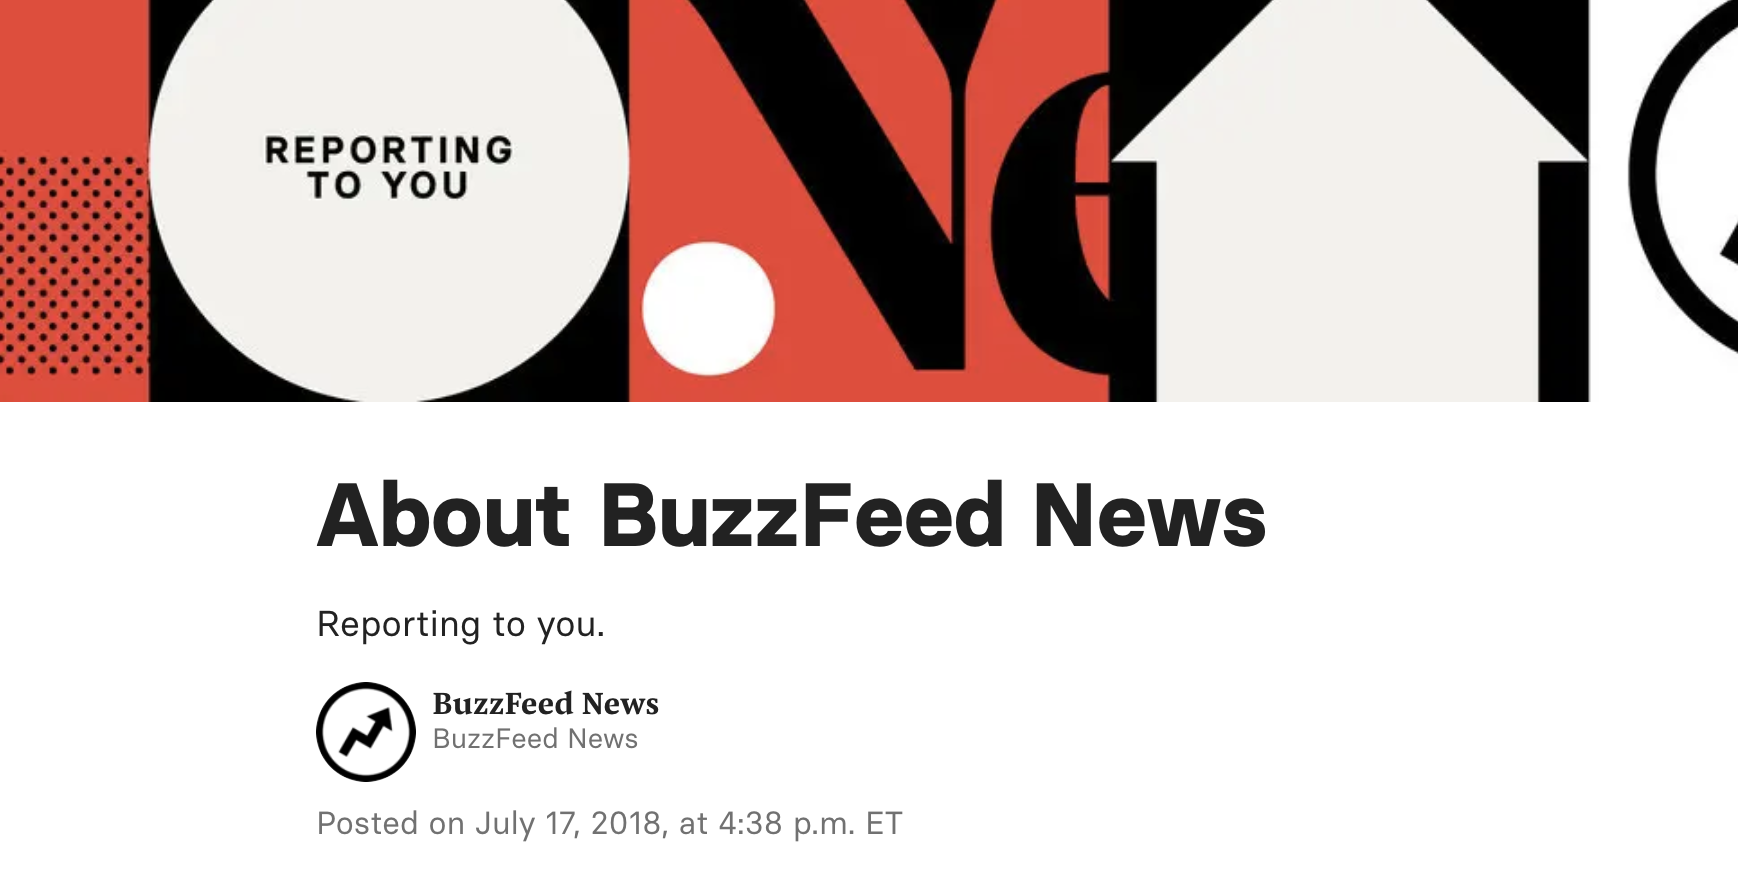 BuzzFeed News - Page A propos